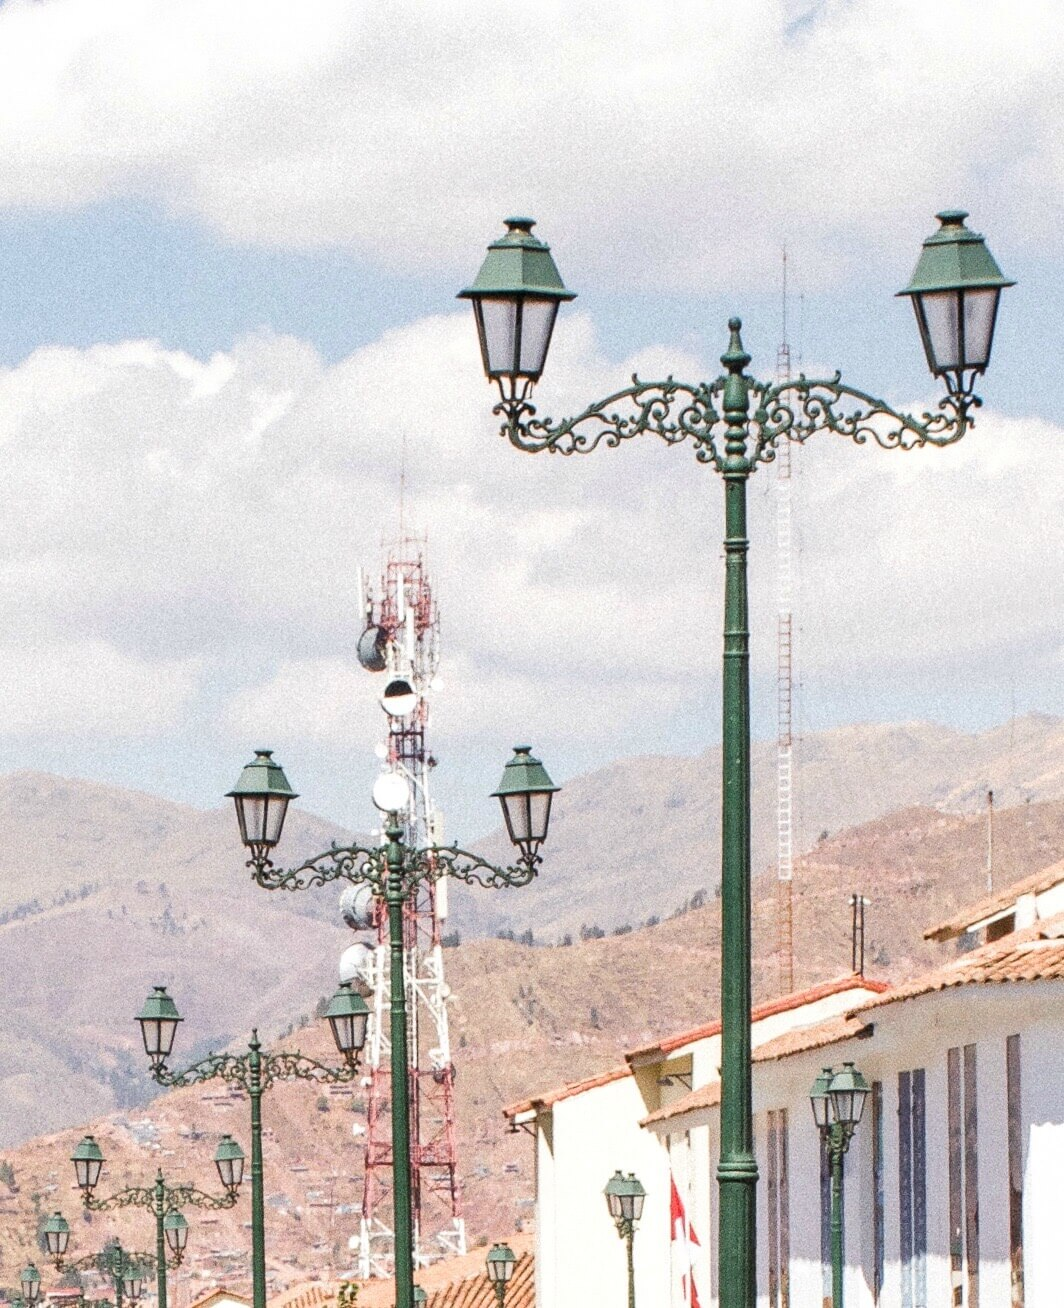 A line of green street lights with the Andes mountains in the background